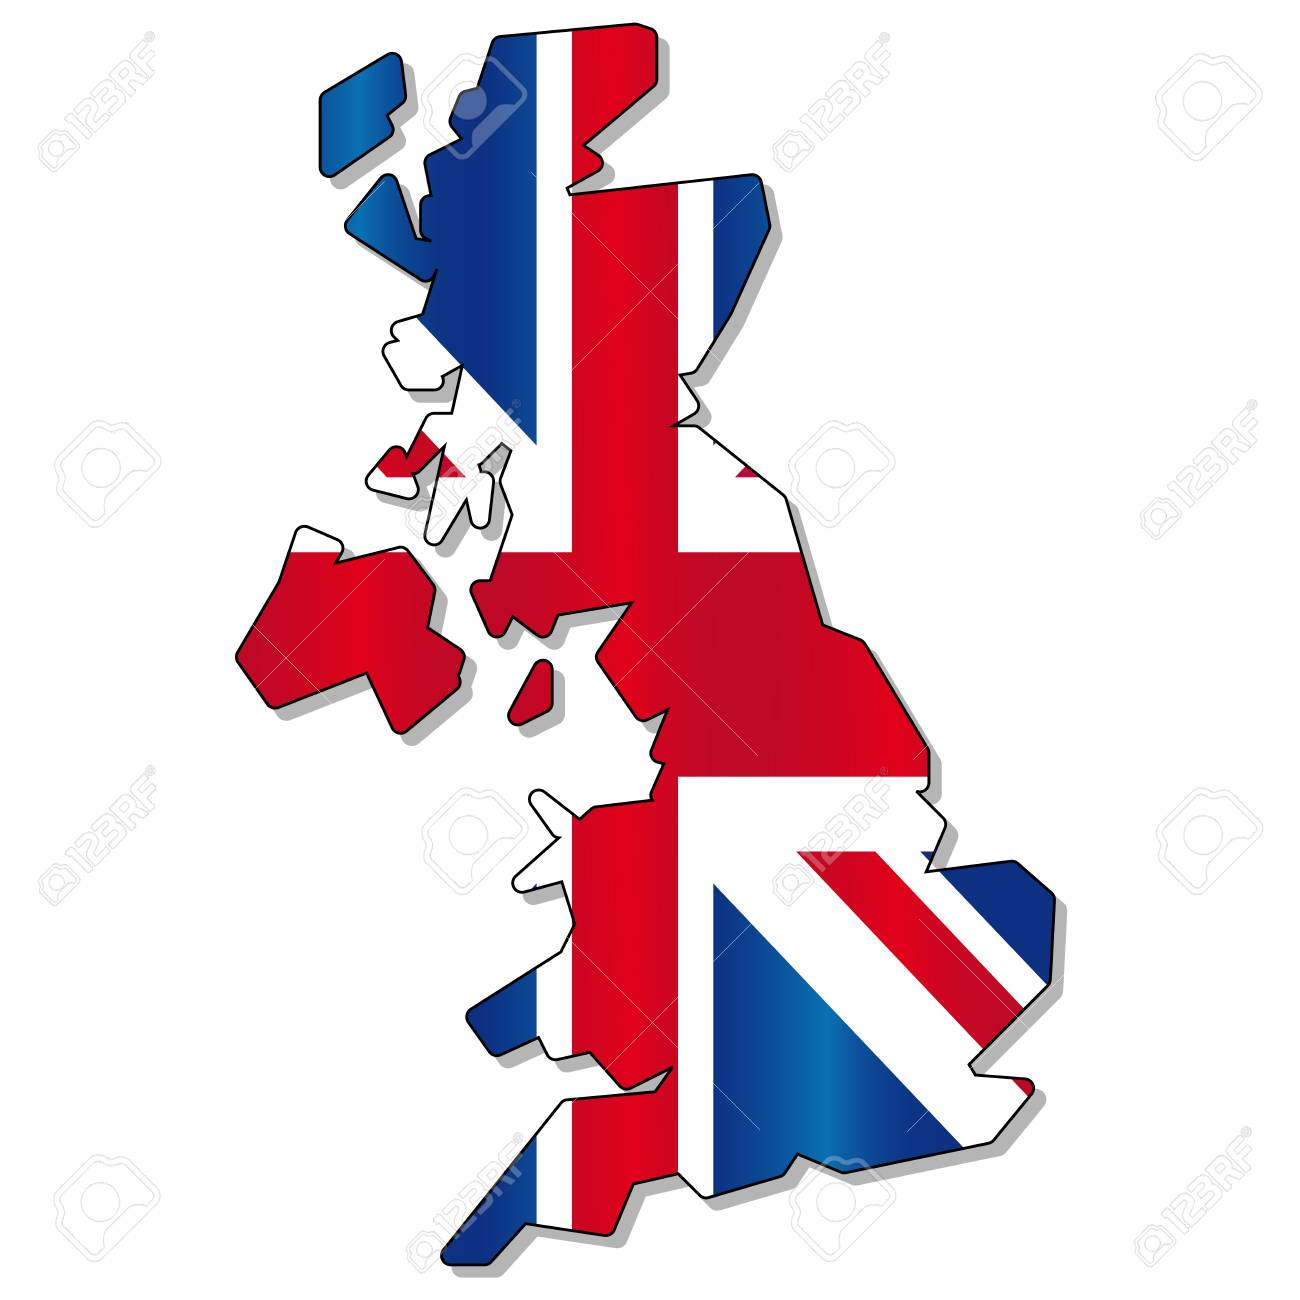 england flag map royalty free cliparts vectors and stock